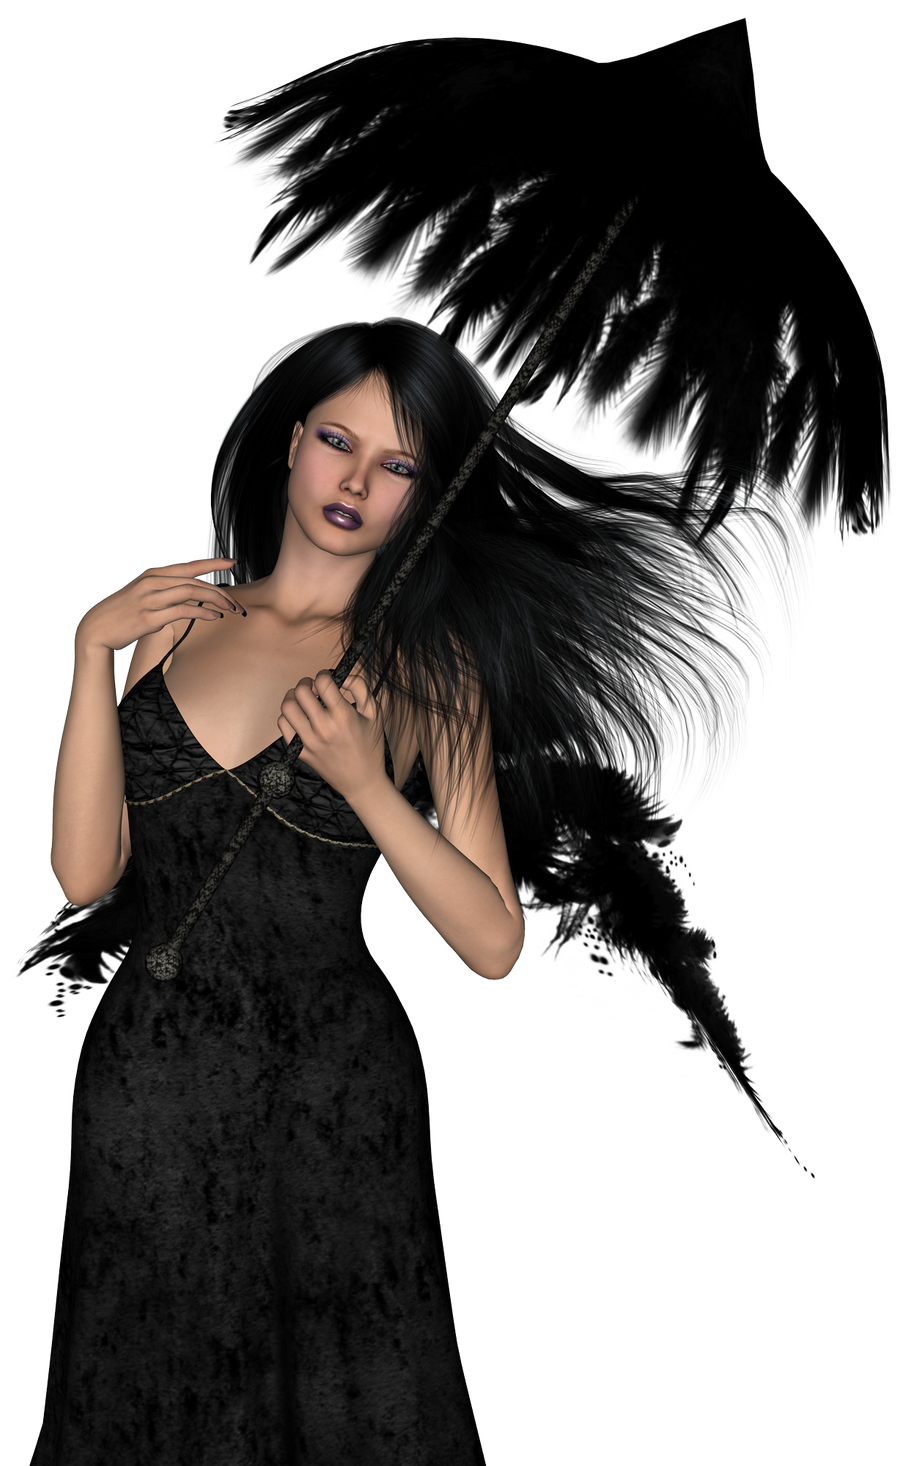 dark angel stock 002 by Ecathe